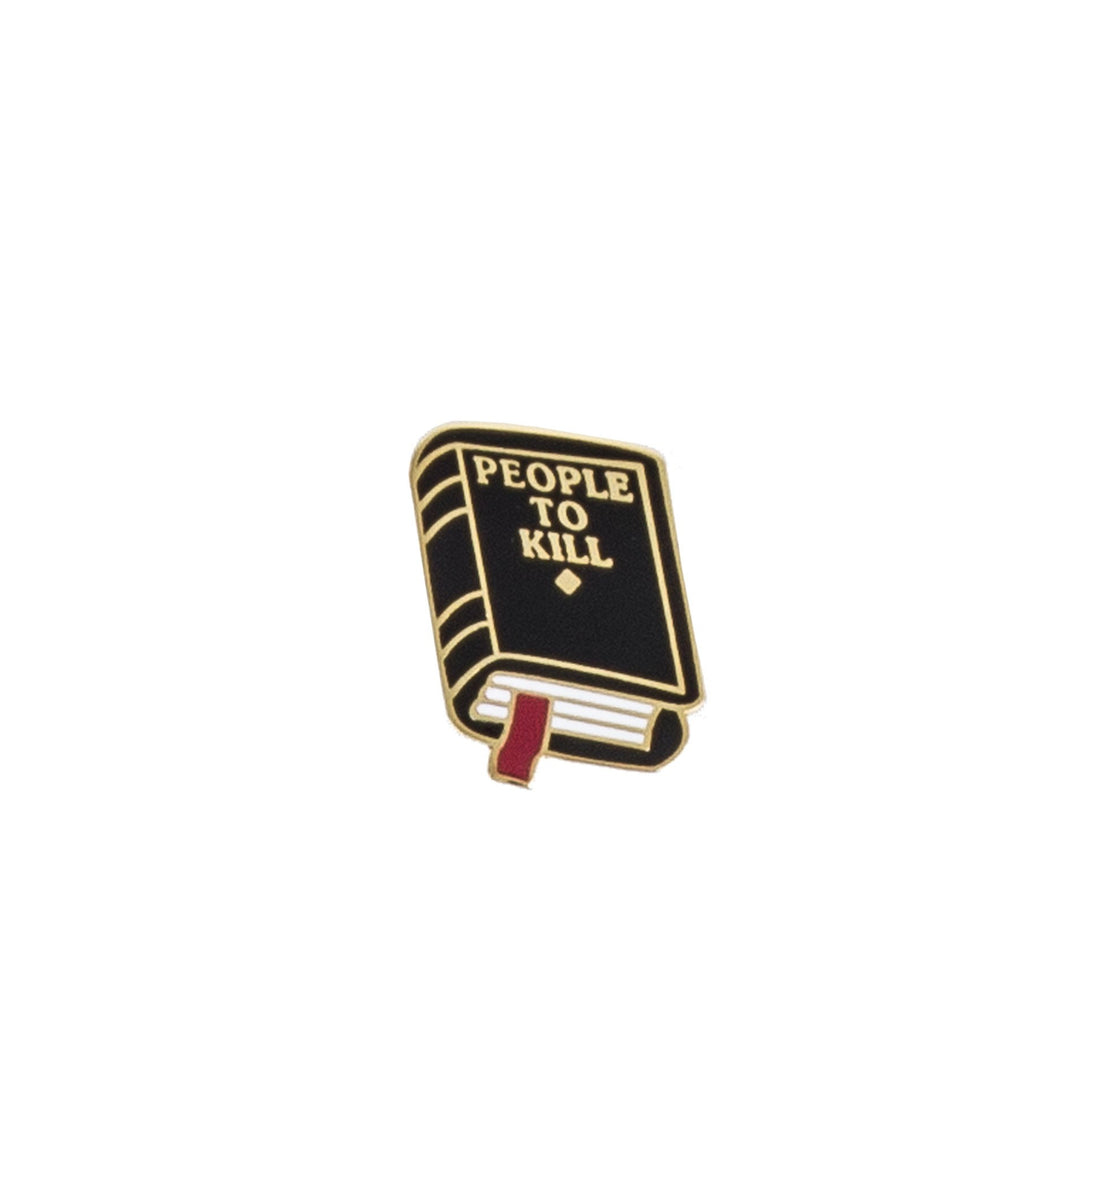 Explorer's Press - People to Kill Pin - Stickers/Pins/Patches - Iron and Resin